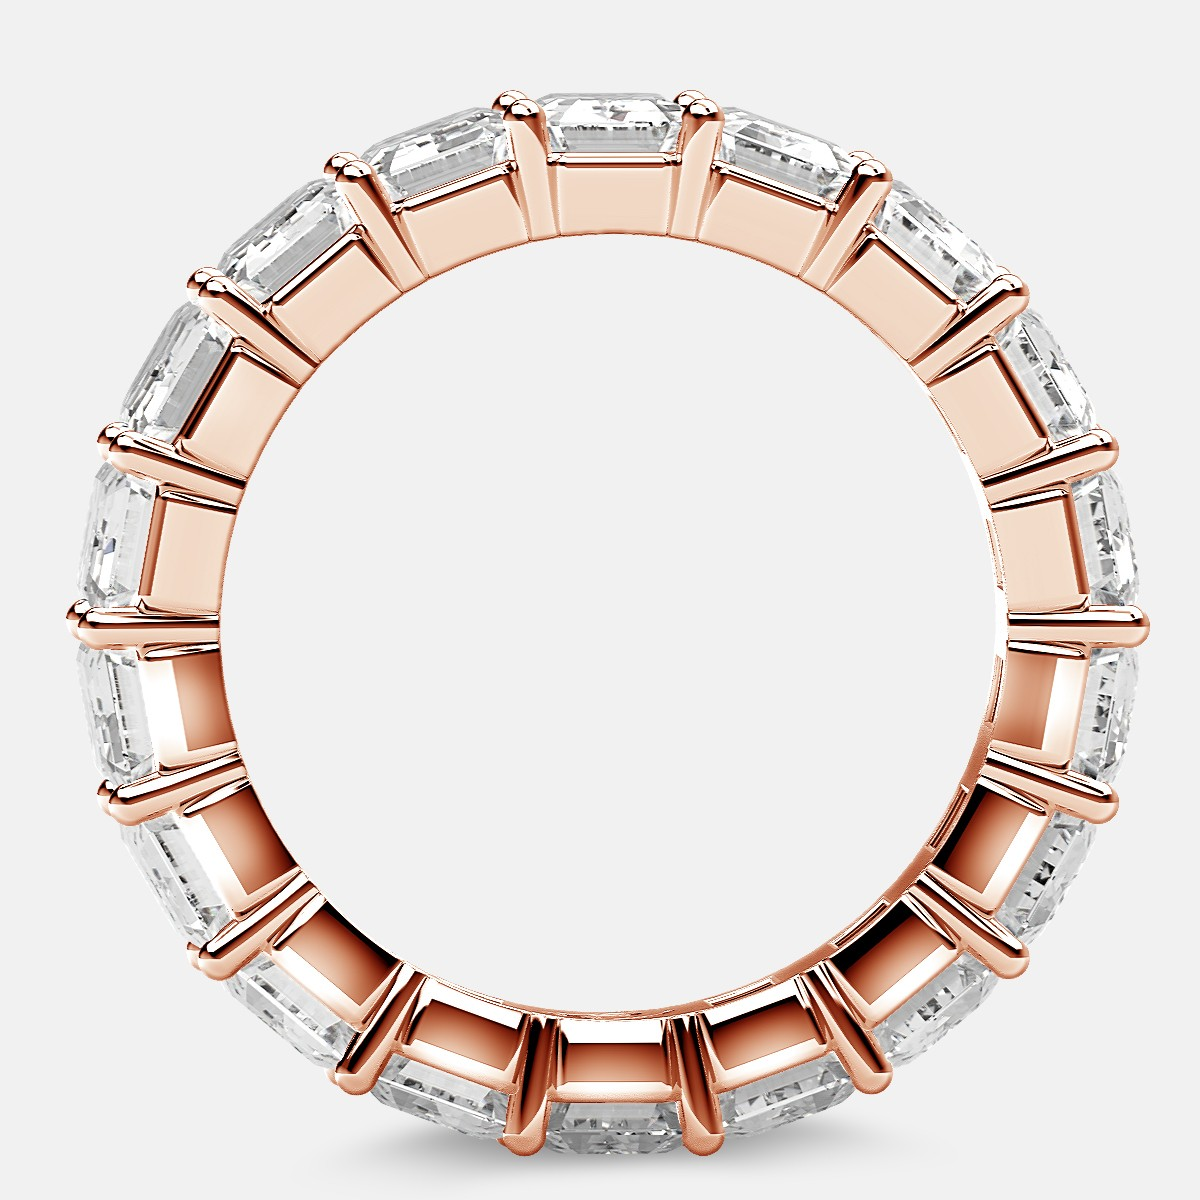 Classic Eternity Ring with Emerald Cut Diamonds in 18k Rose Gold